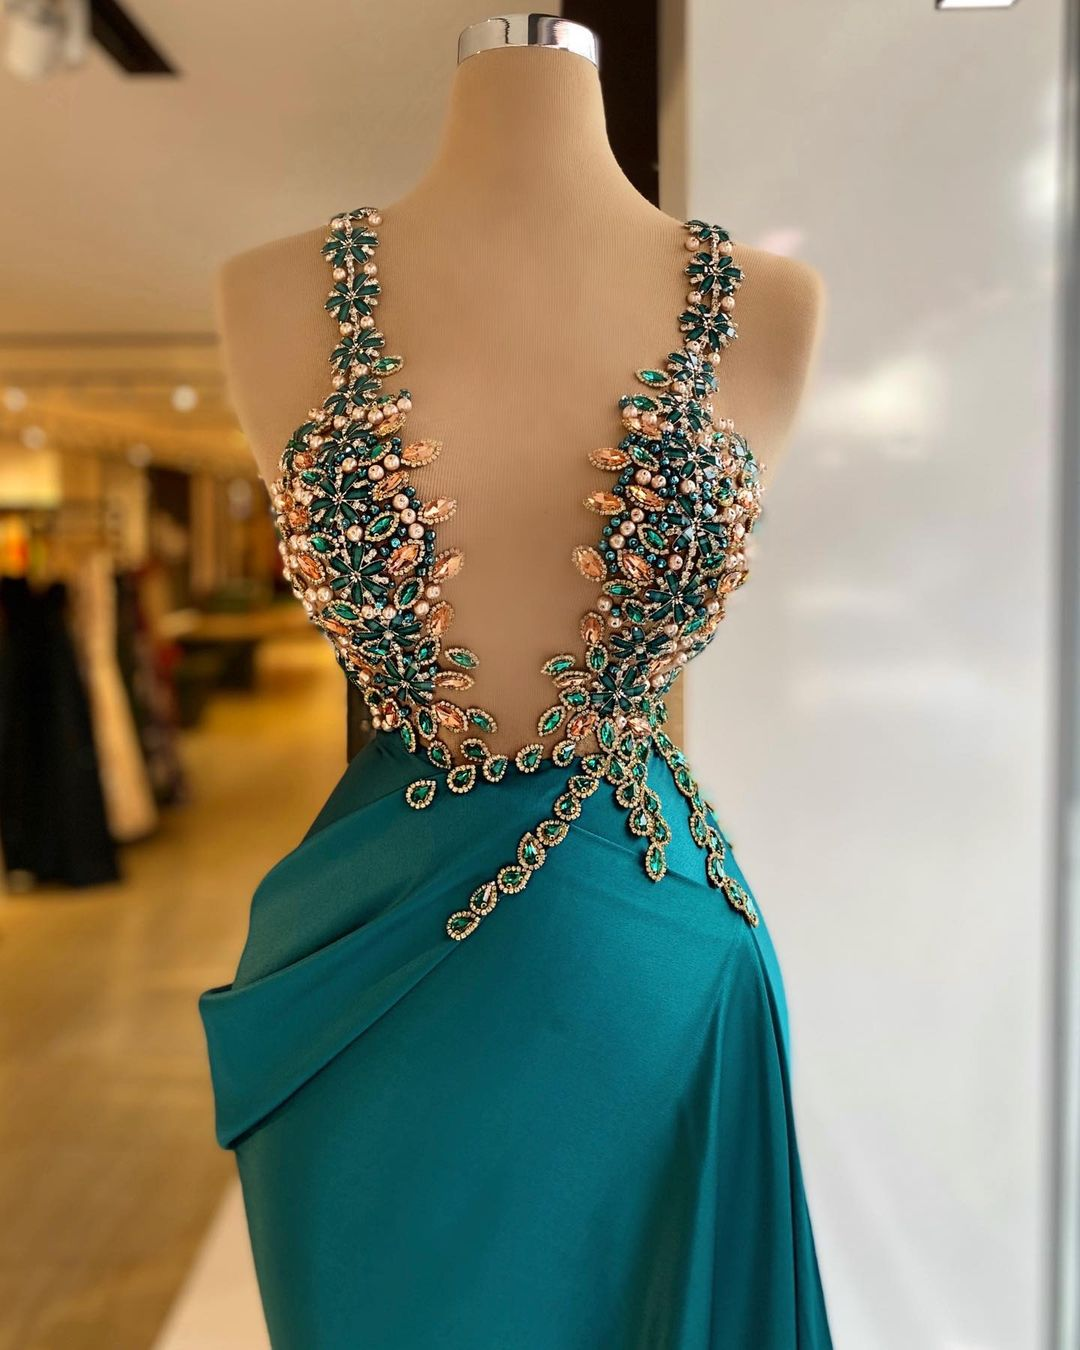 Dark Turquoise Beaded Satin Dress